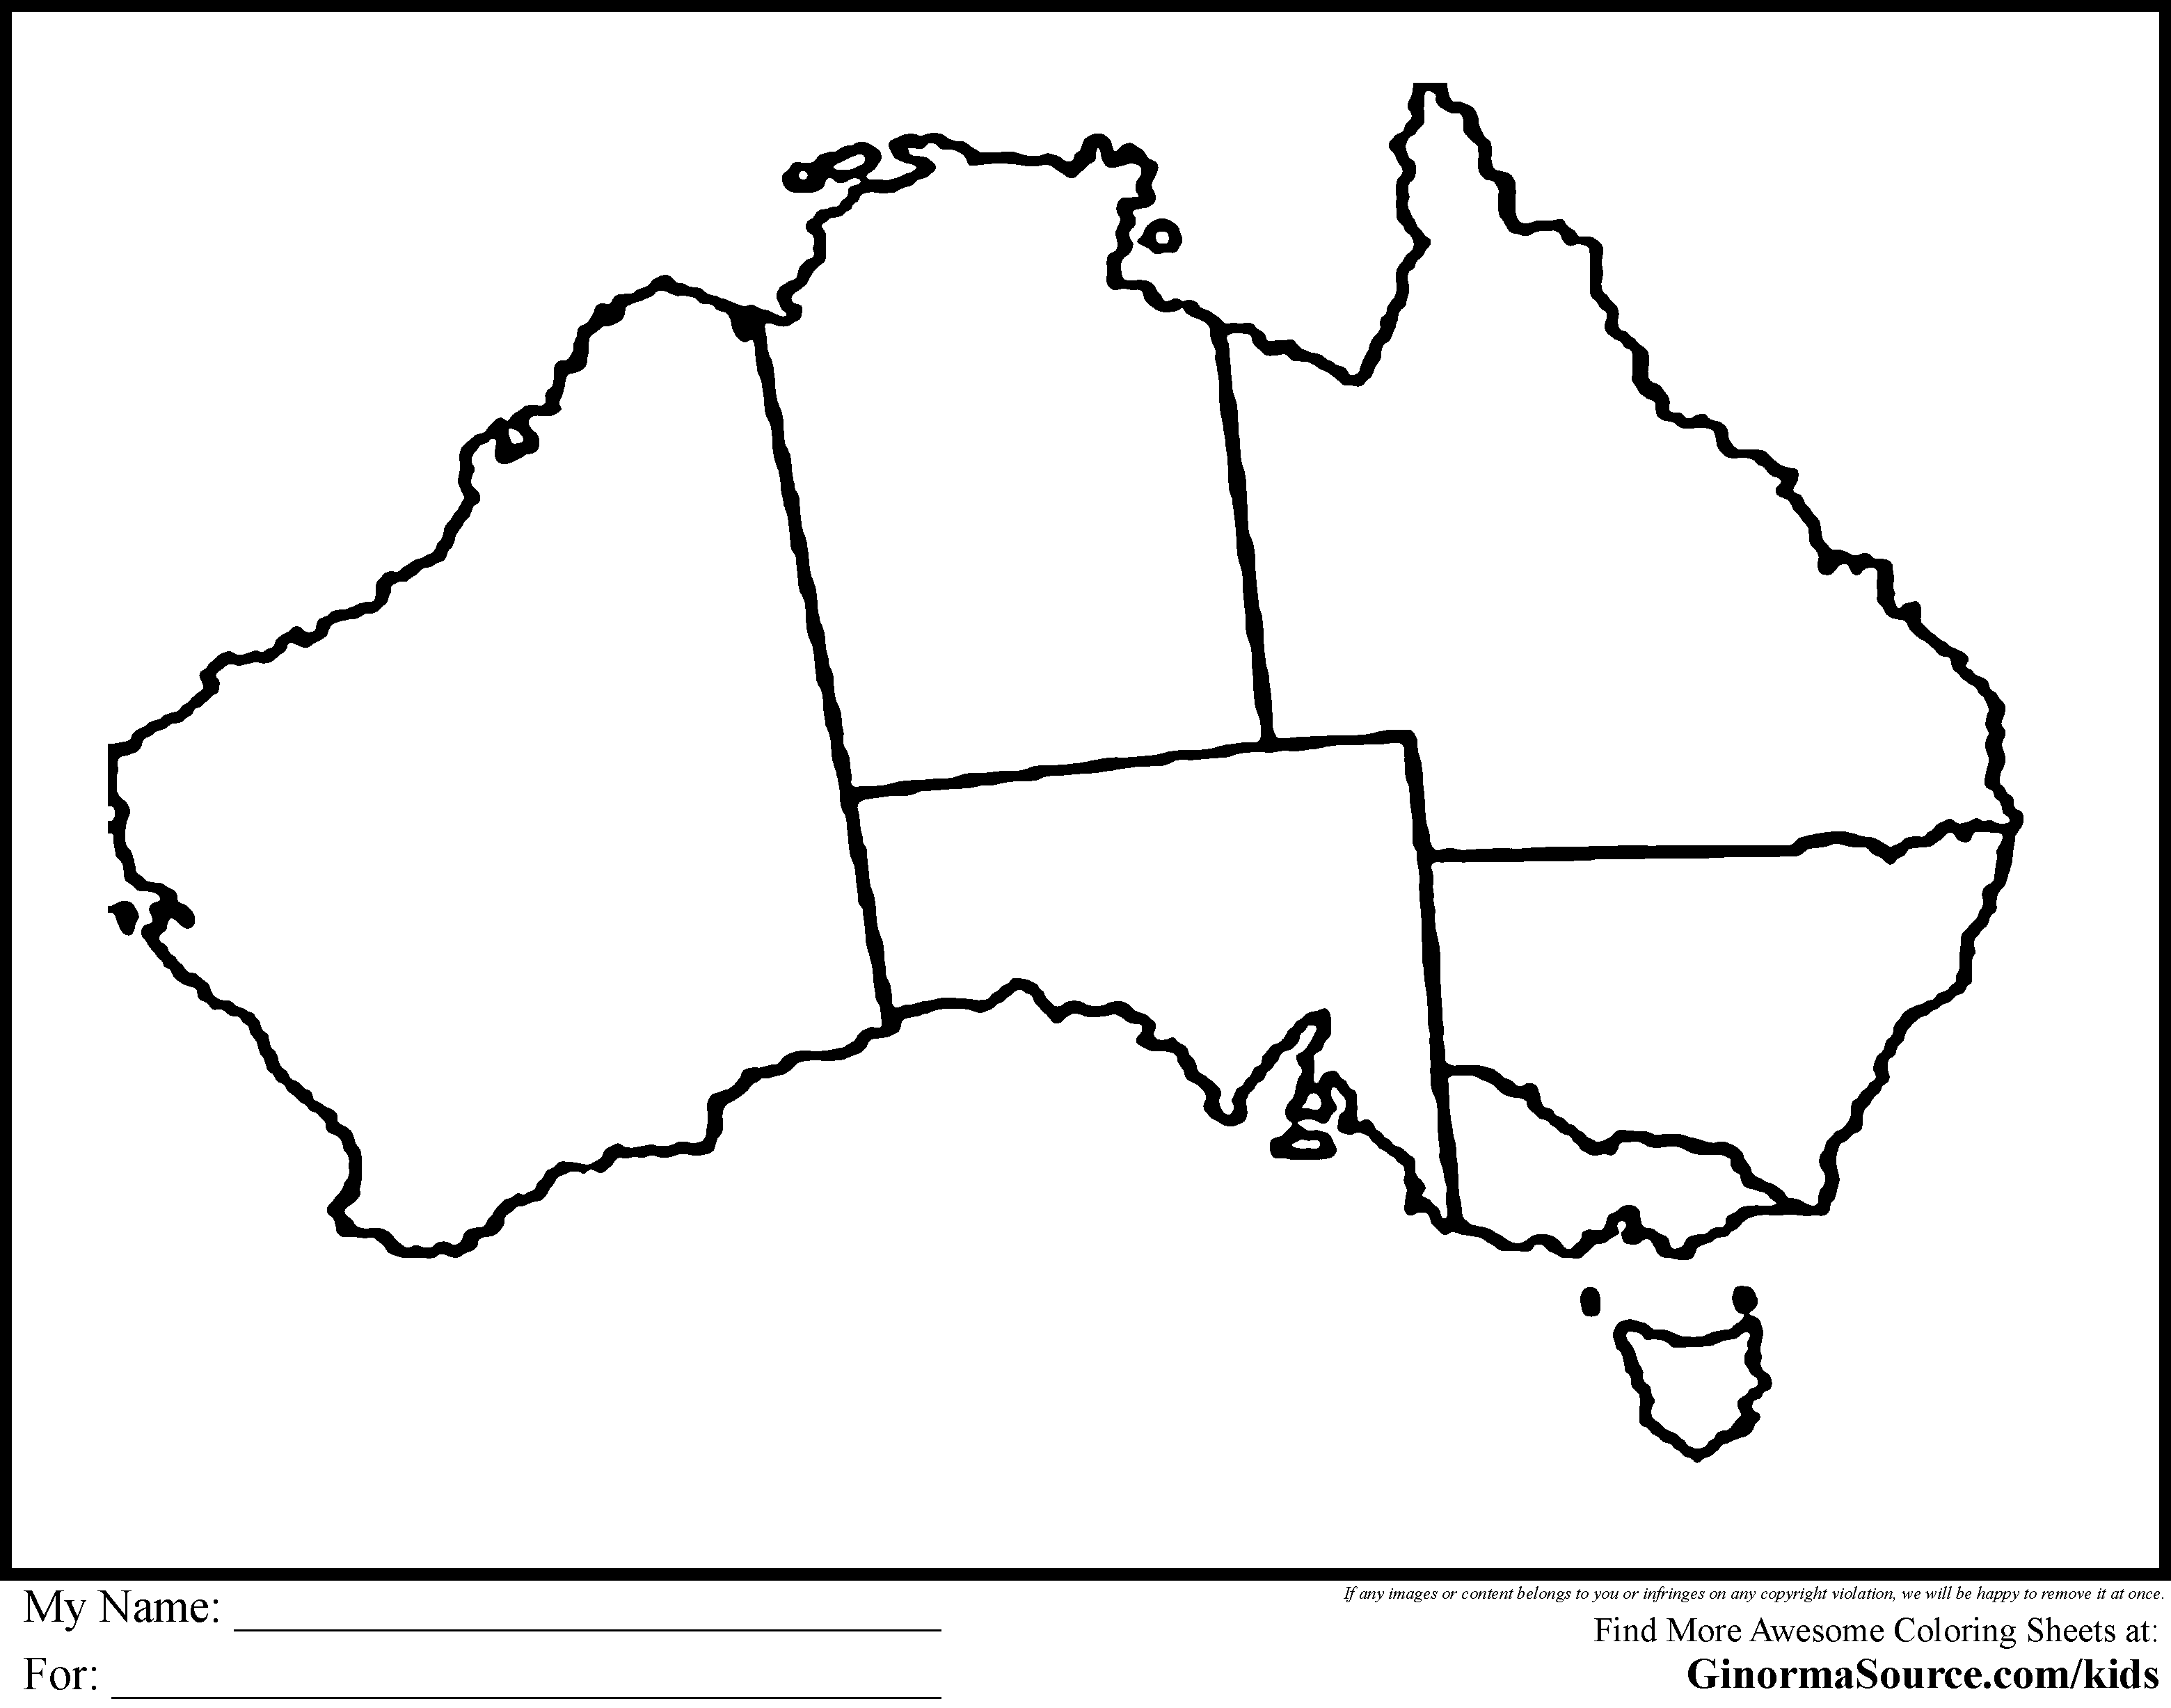 Australia coloring page coloring home for Australia map coloring page